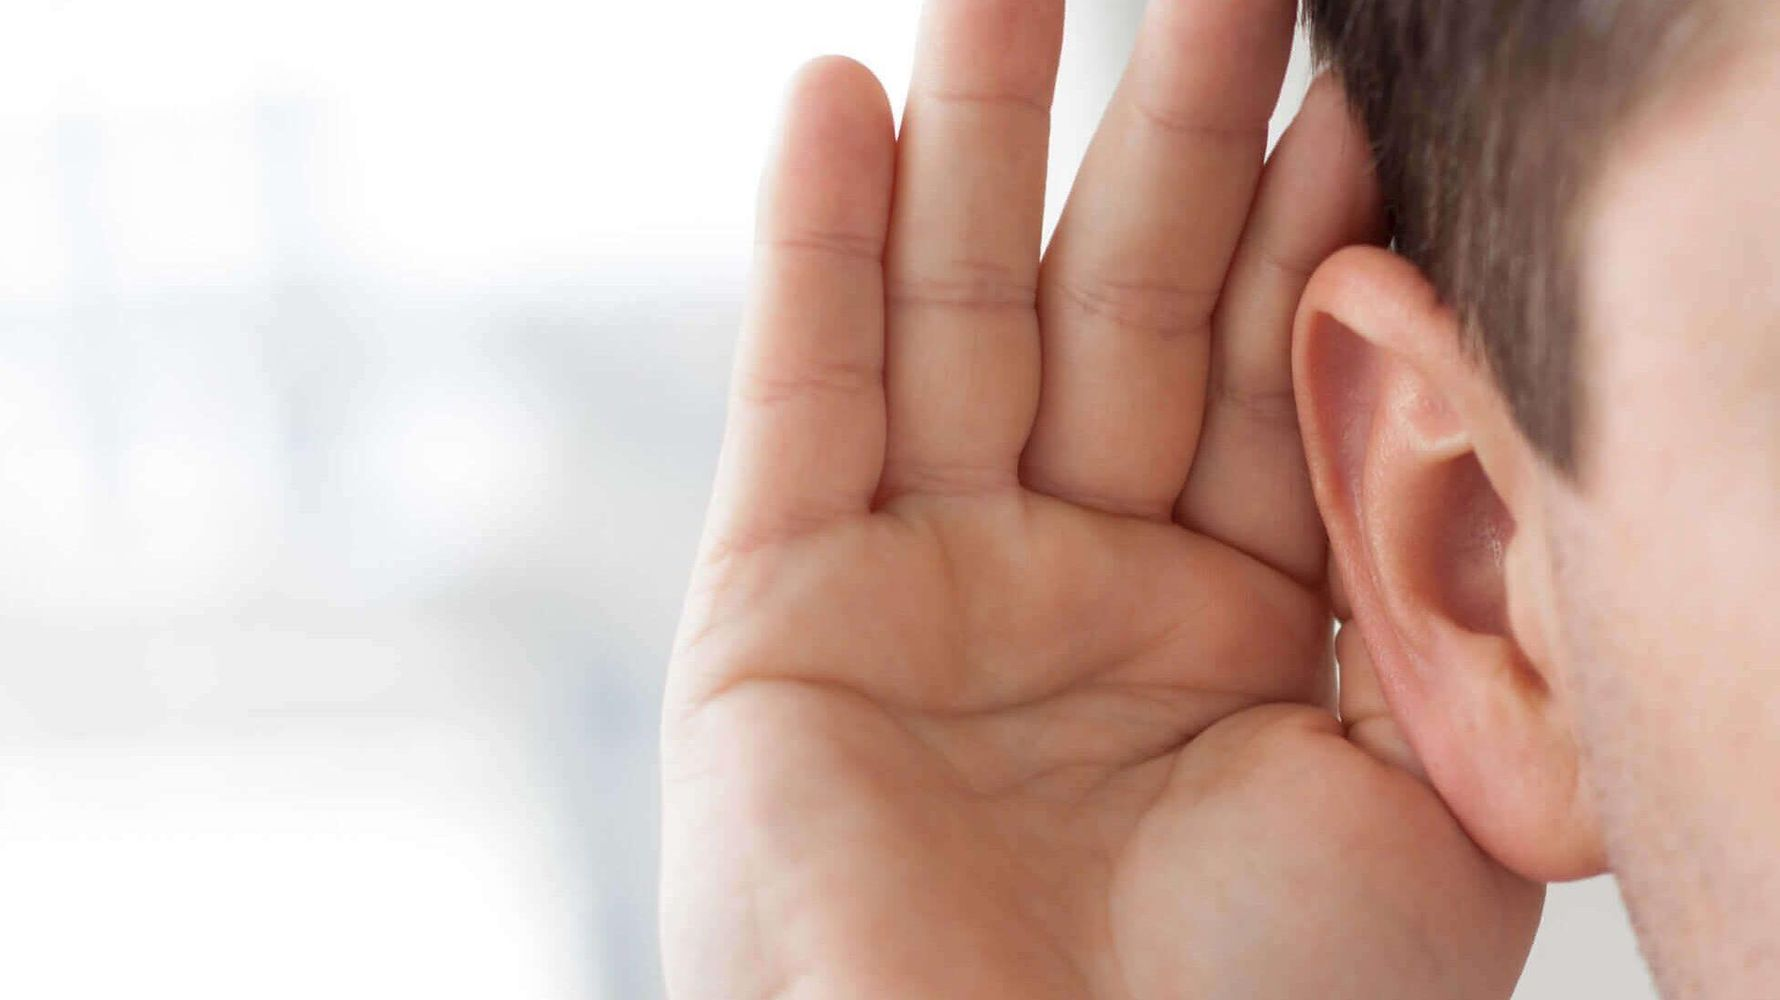 hearing impairment can be prevented